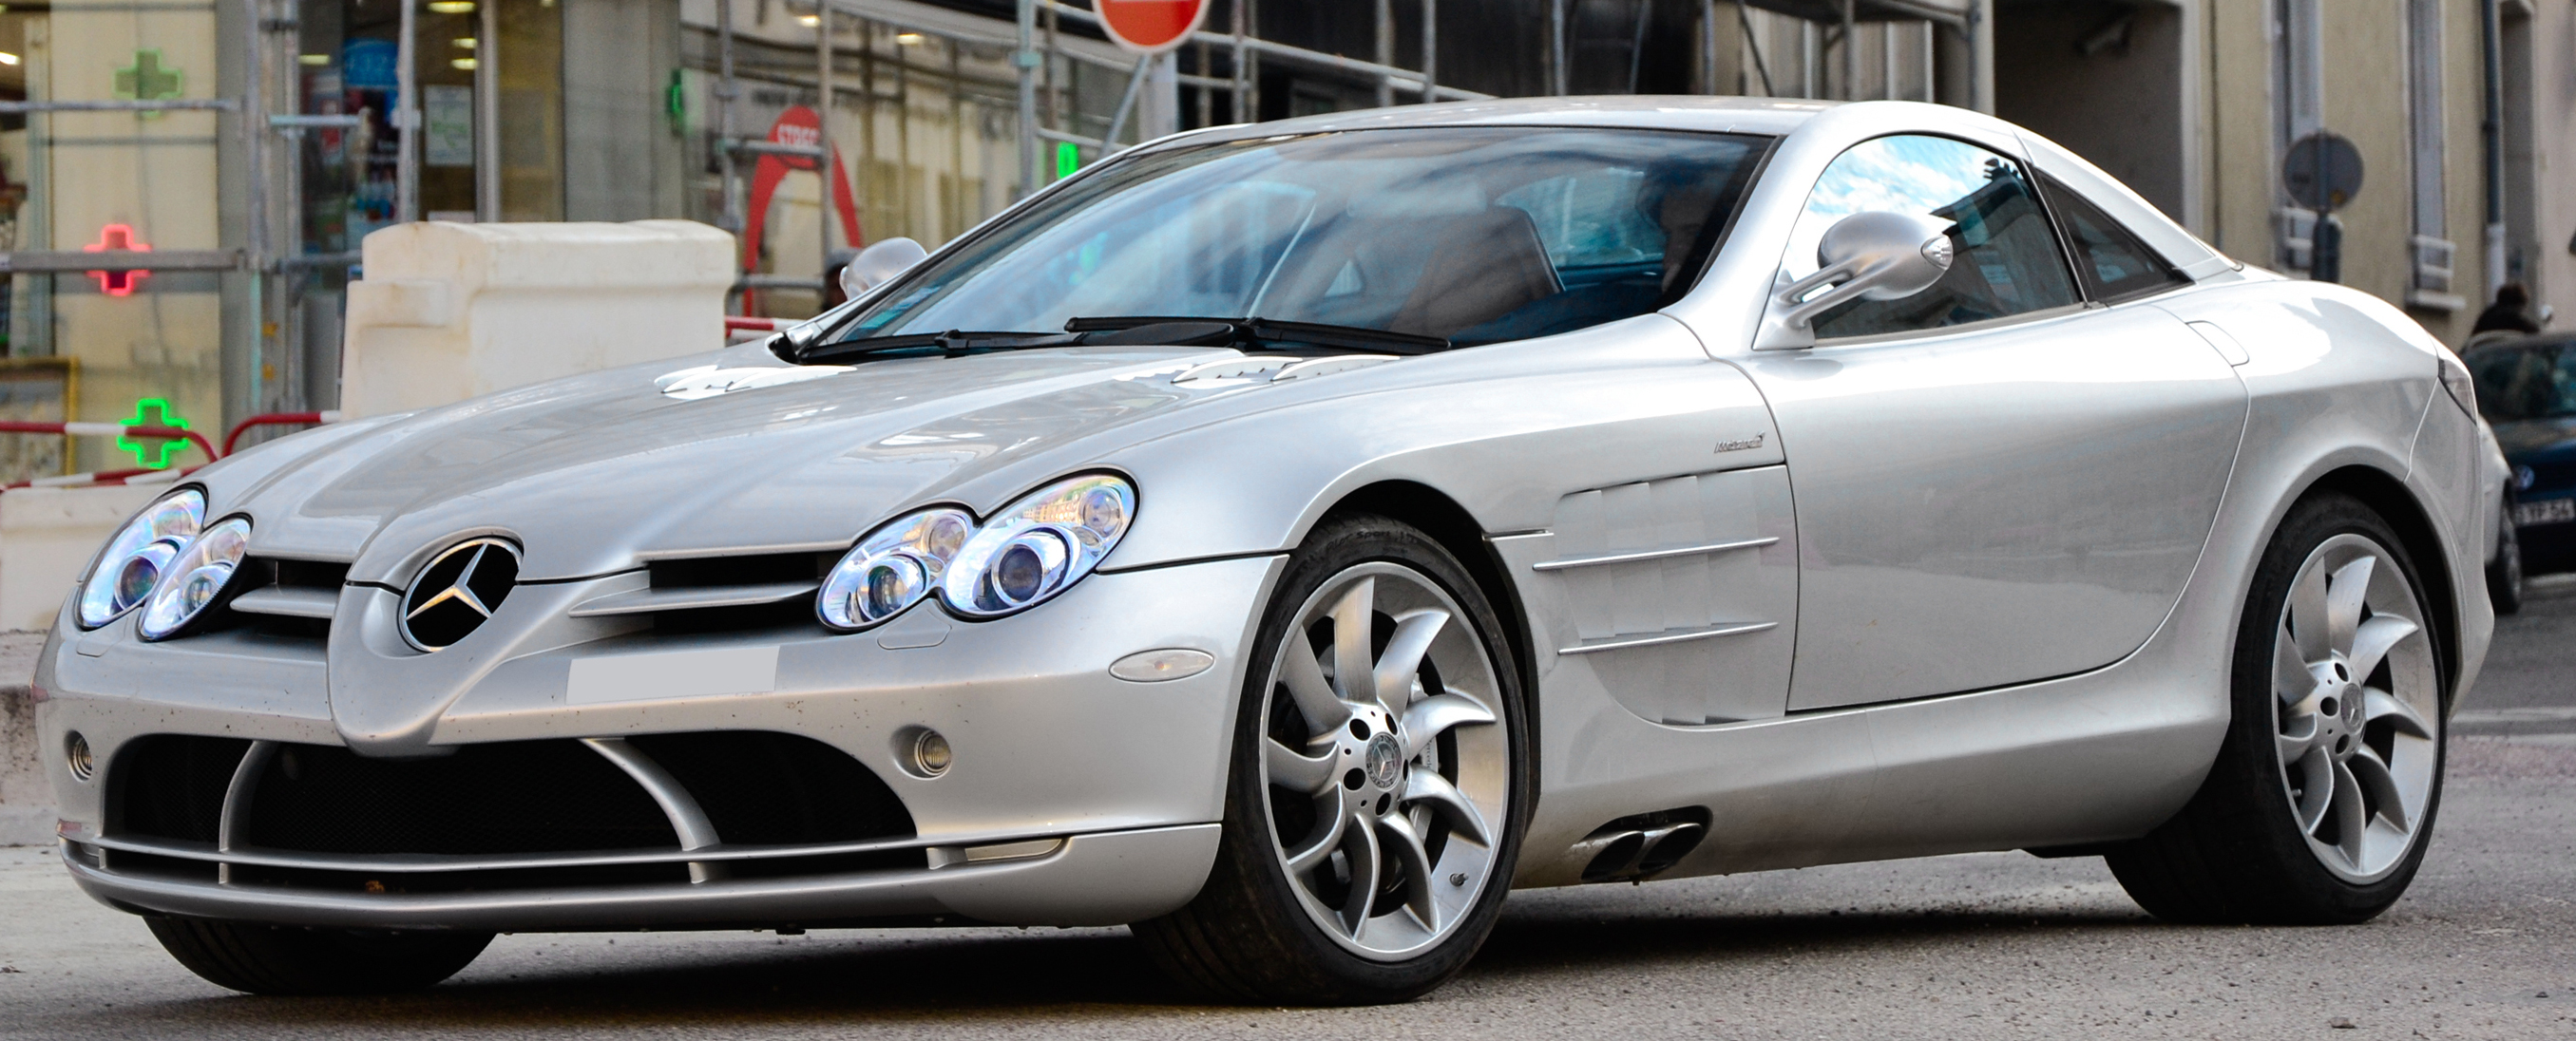 Vehicle suggestions see first post page 199 beamng for Mercedes benz slr